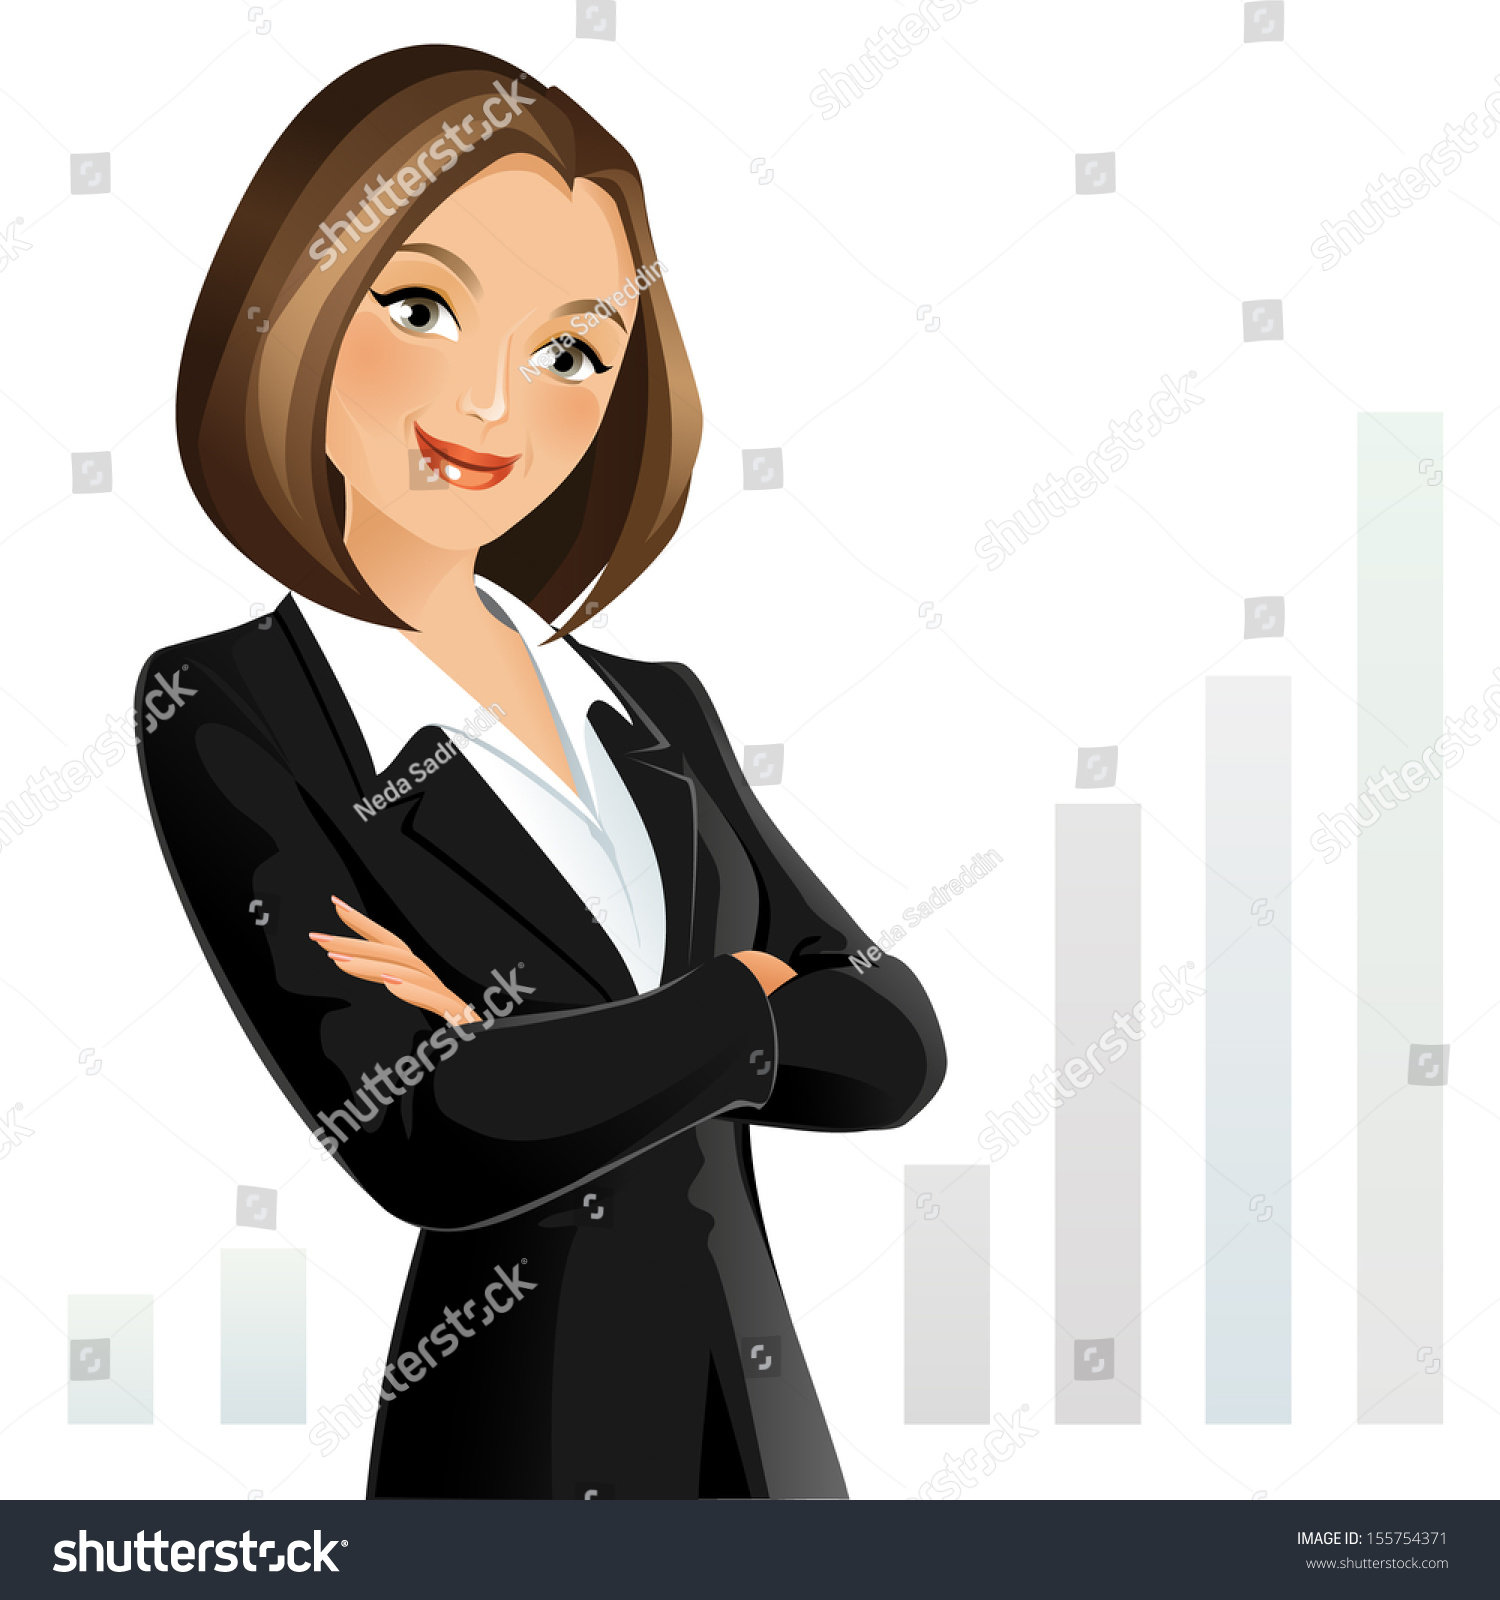 stock-vector-businesswoman-155754371.jpg